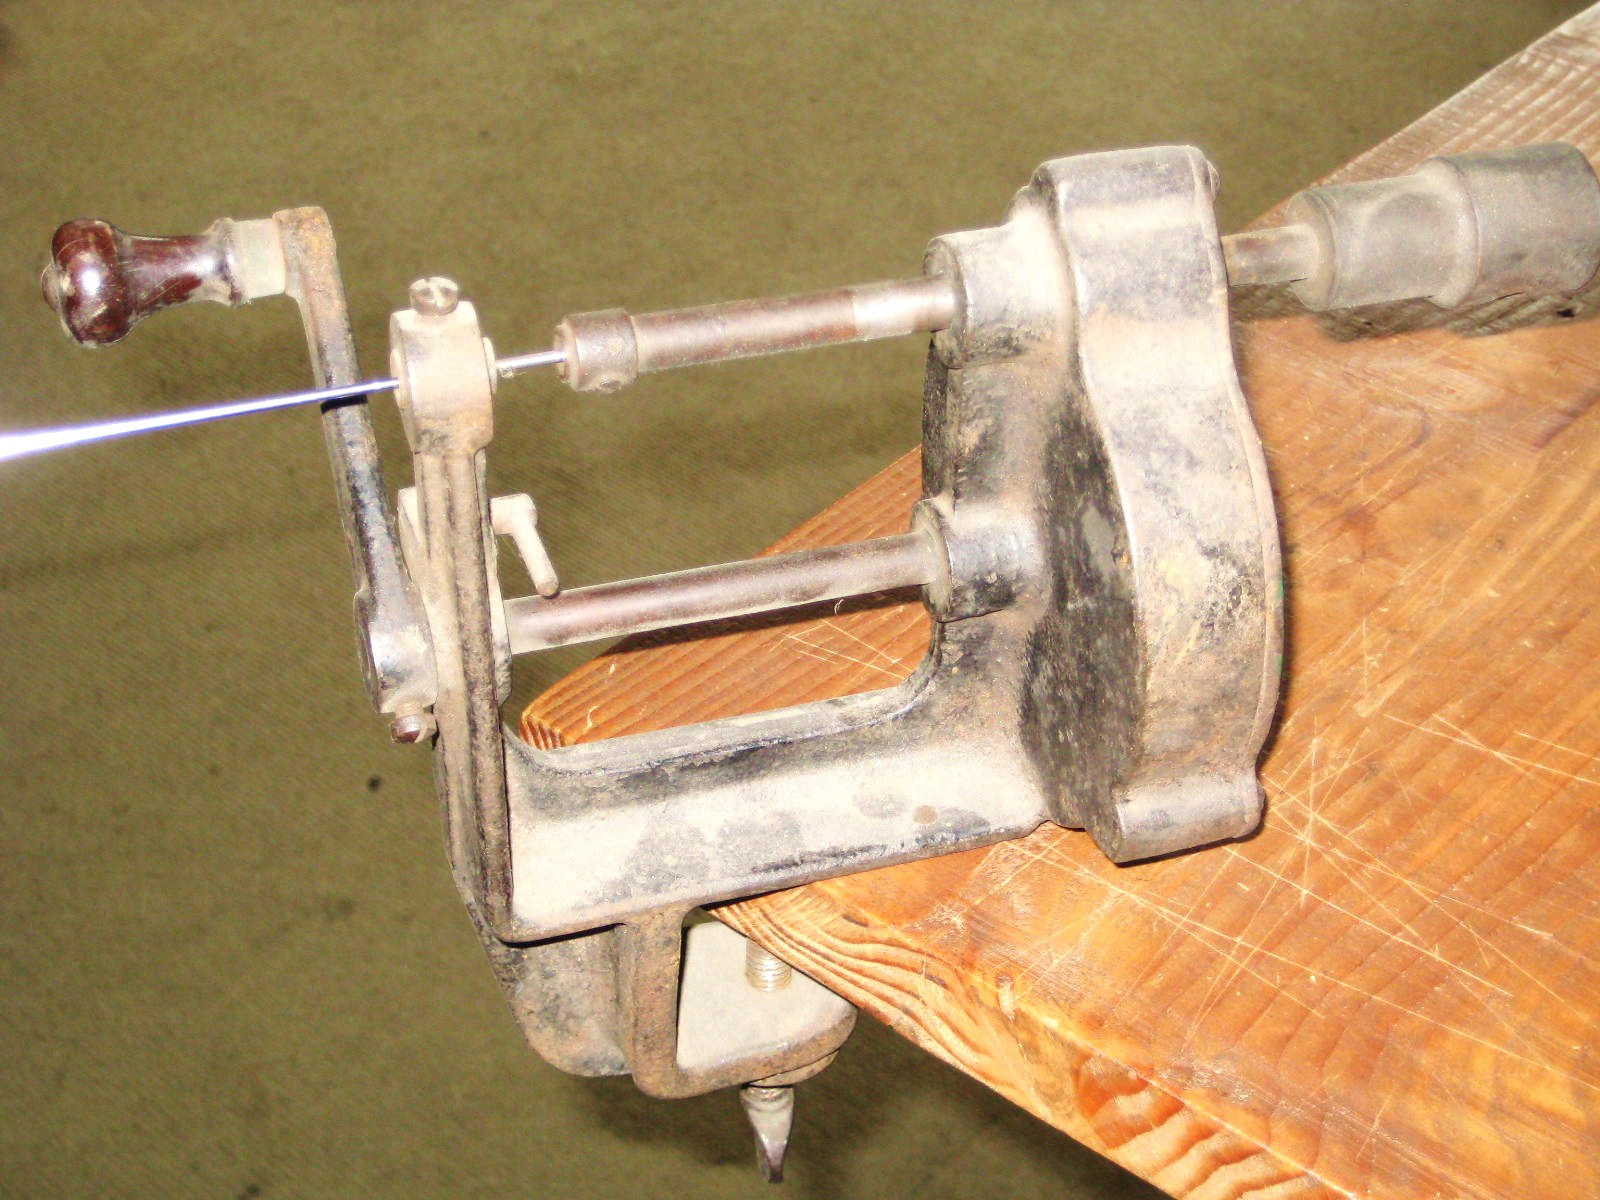 spoke threading machine